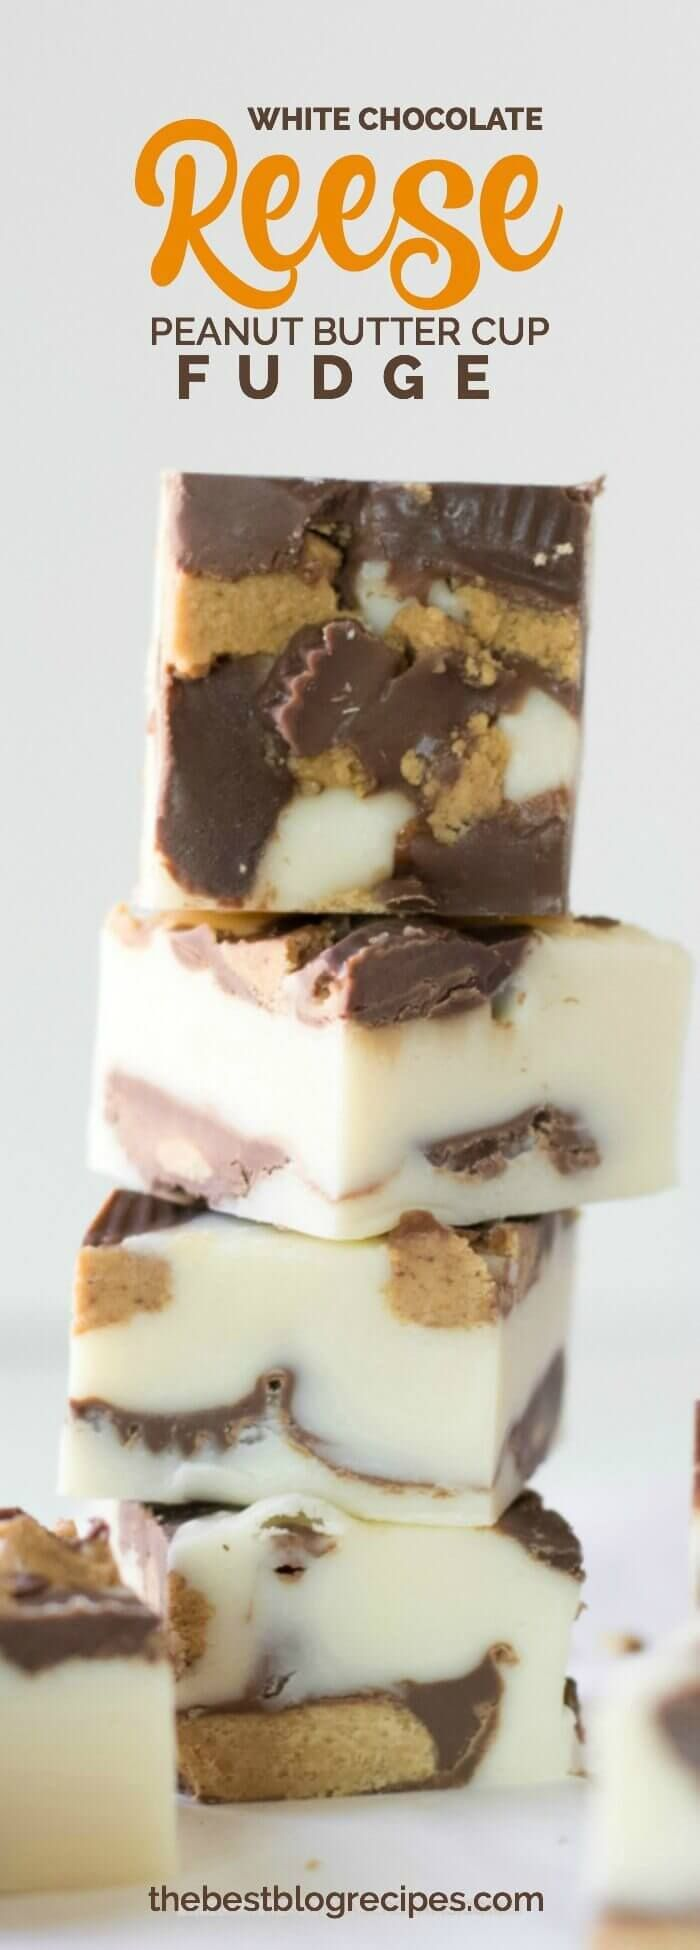 Are you very good at making fudge? Even if you aren't our White Chocolate Reese's Peanut Butter Cup Fudge Bites are super easy to make are are delicious!